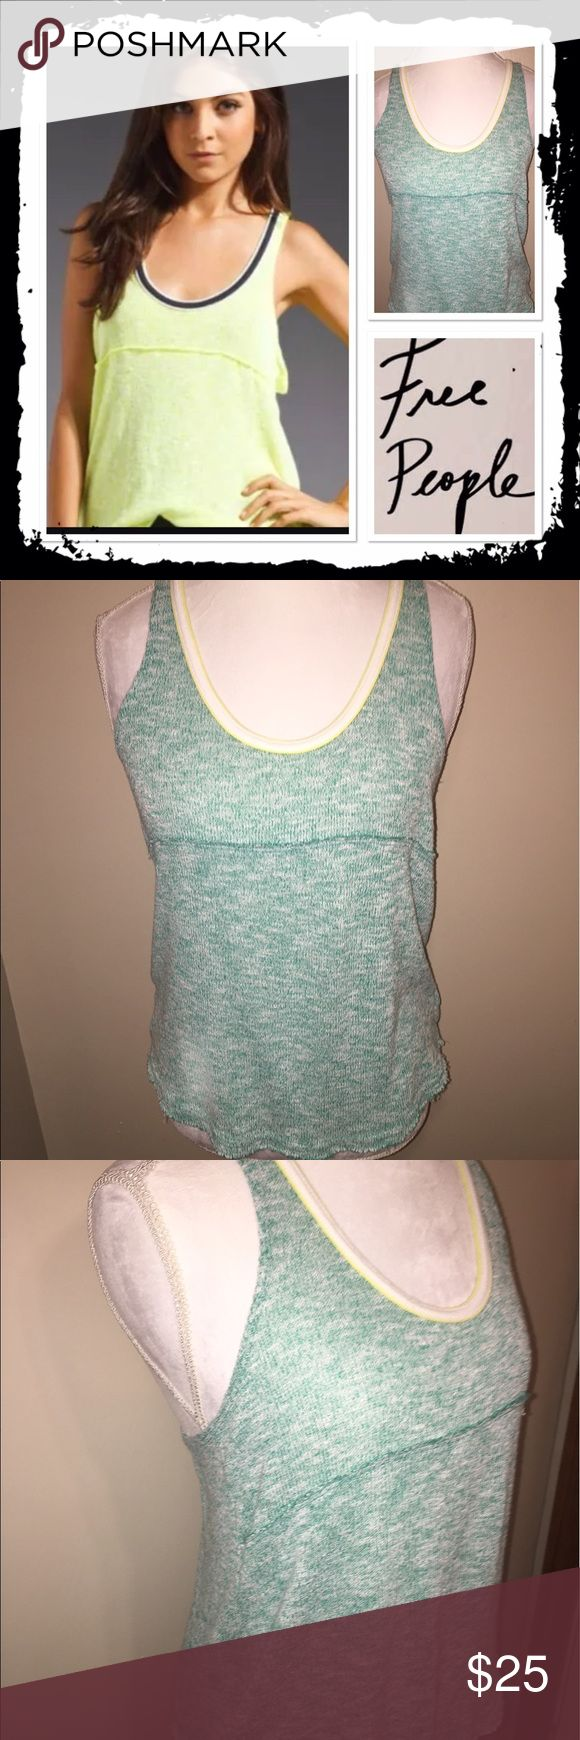 Free People Venice Vibes razorback Like new teal free People we the free razorback tank size s Free People Tops Tank Tops